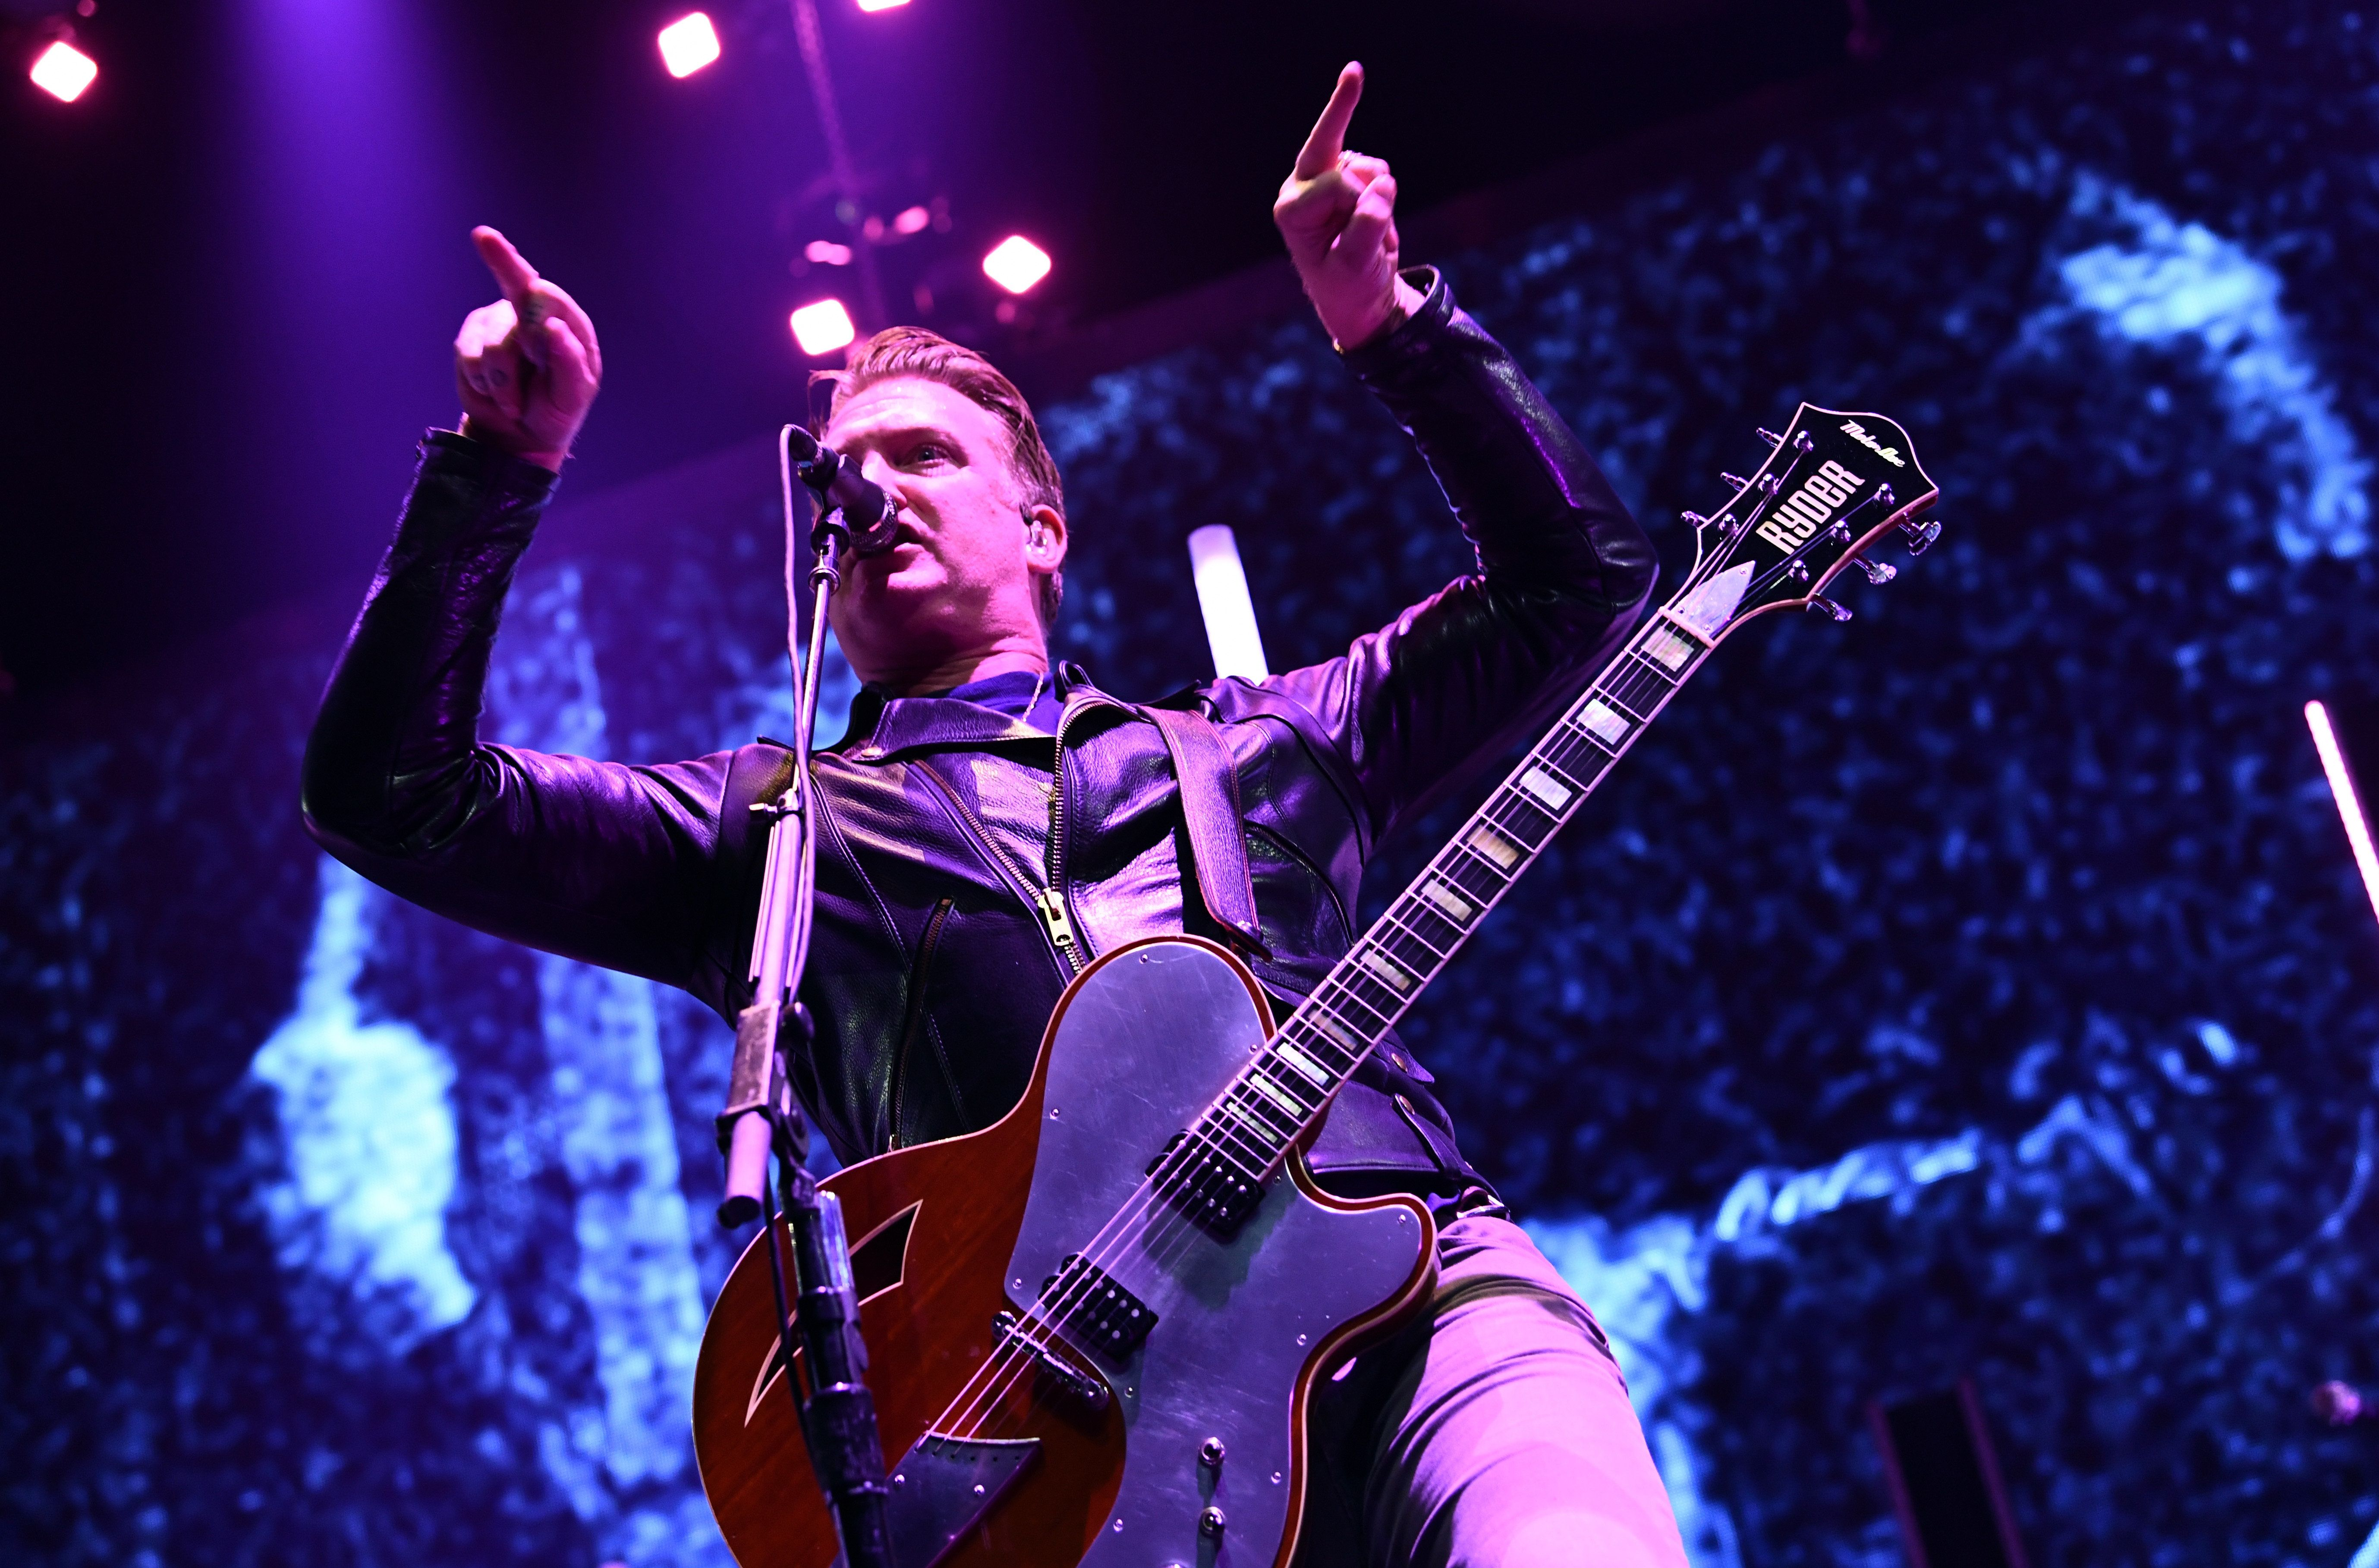 INGLEWOOD, CA - DECEMBER 09:  Josh Homme of Queens of the Stone Age performs onstage during KROQ Almost Acoustic Christmas 2017 at The Forum on December 9, 2017 in Inglewood, California.  (Photo by Emma McIntyre/Getty Images for KROQ)